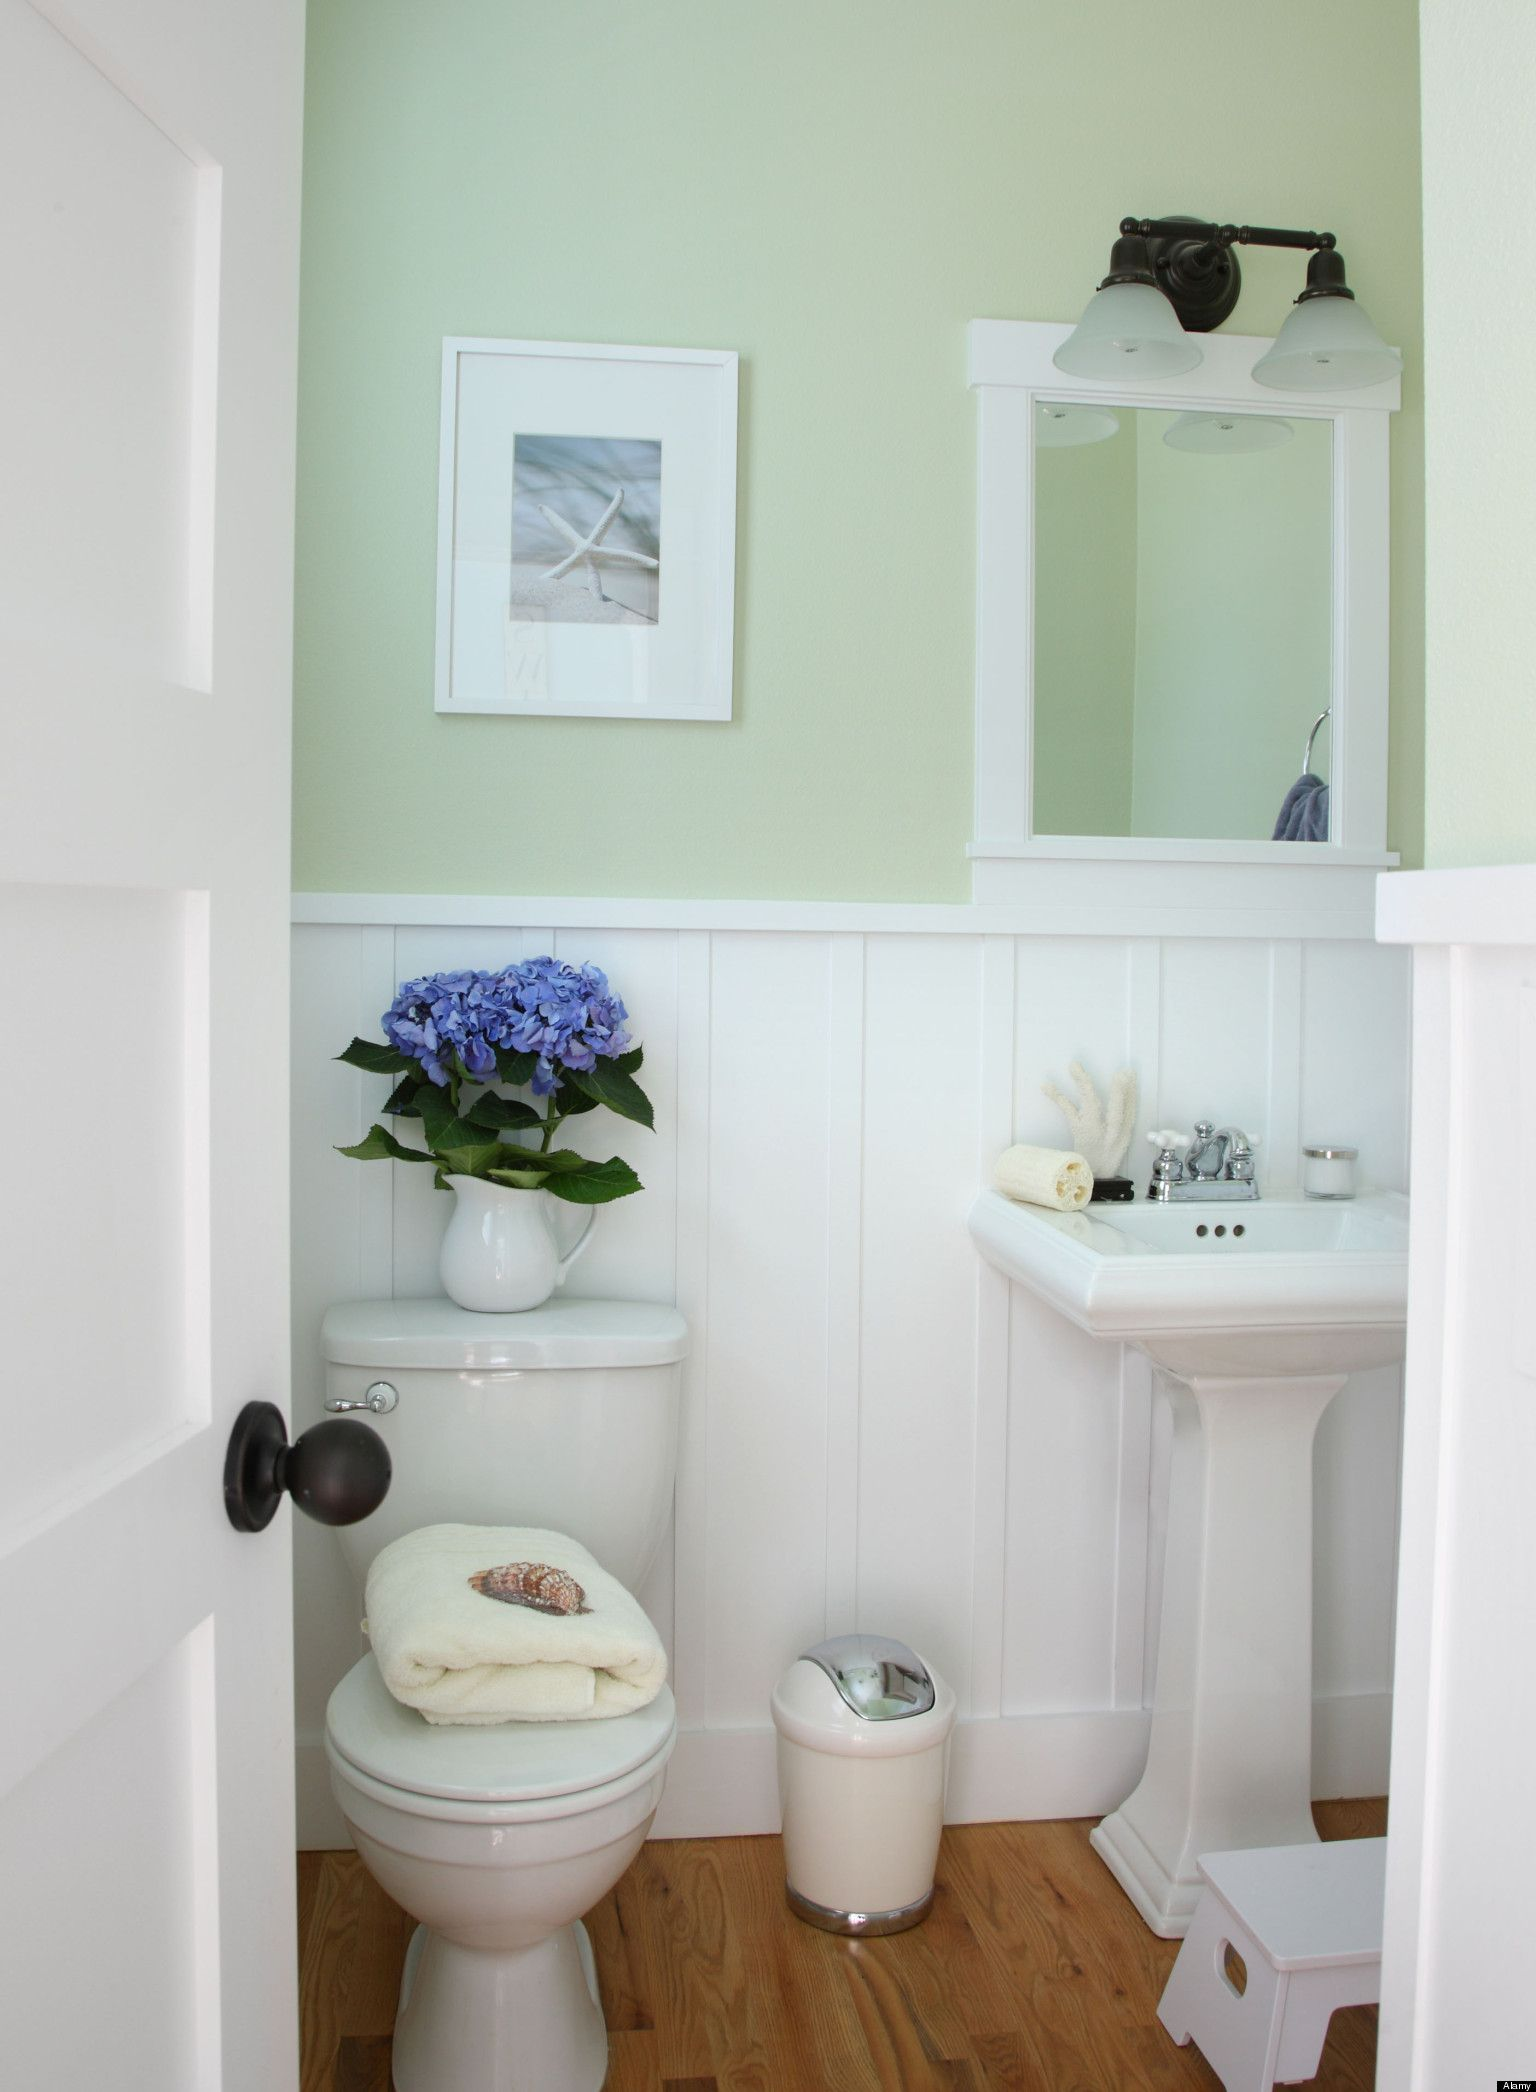 decorating small houses - Google Search | The Loo | Pinterest ...